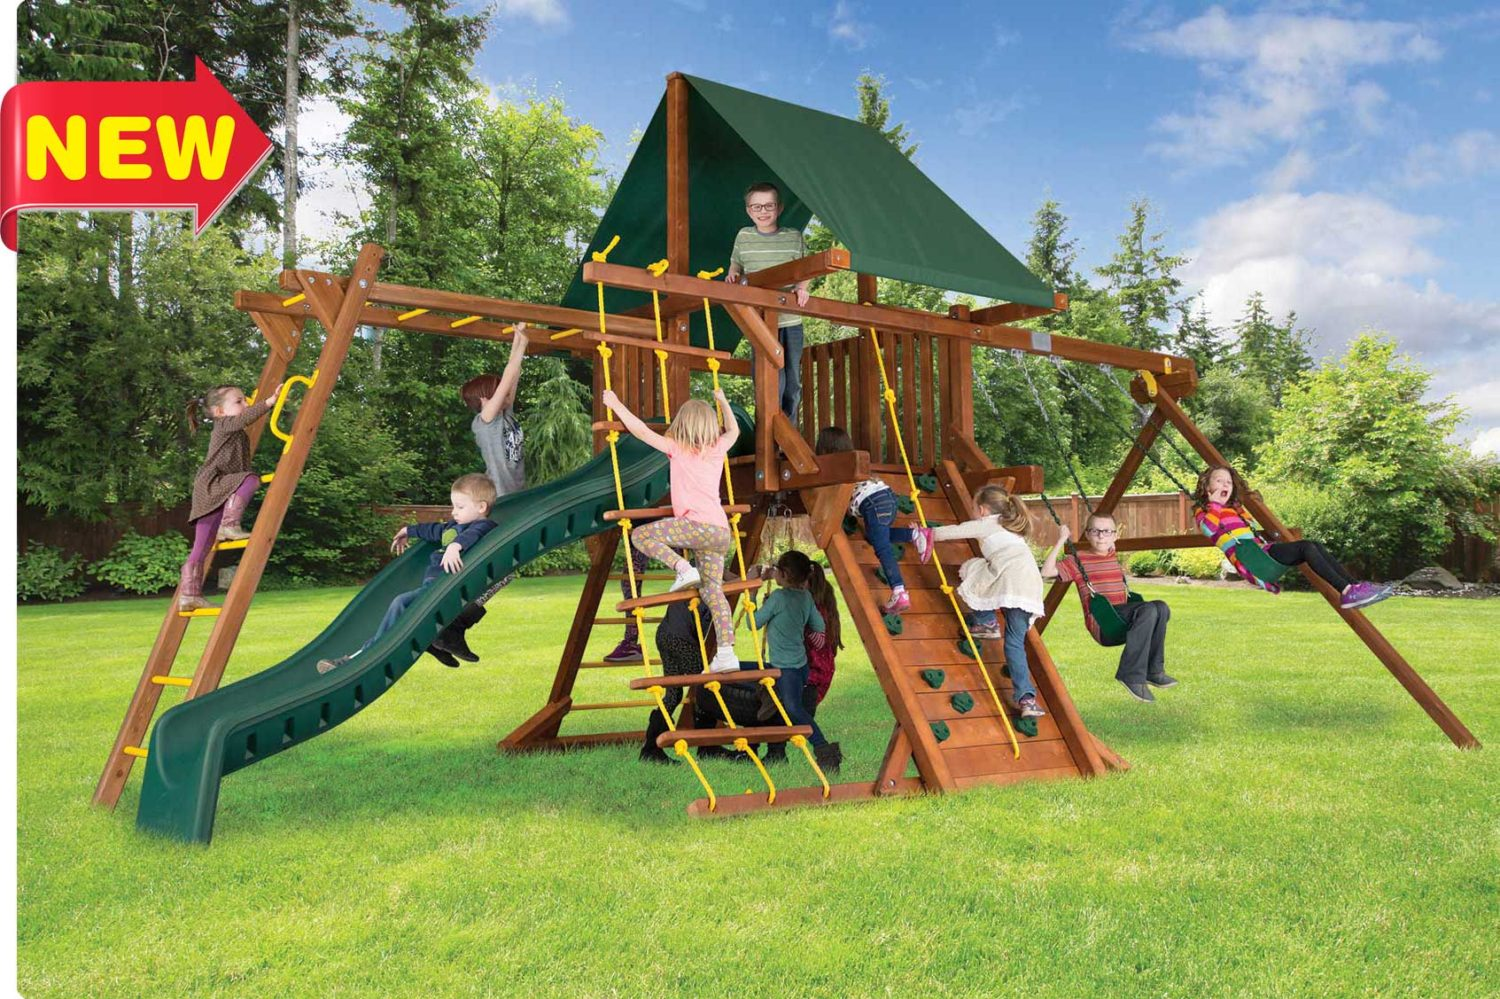 Sunshine Castle Pkg II with Monkey Bars Wooden Swing Set